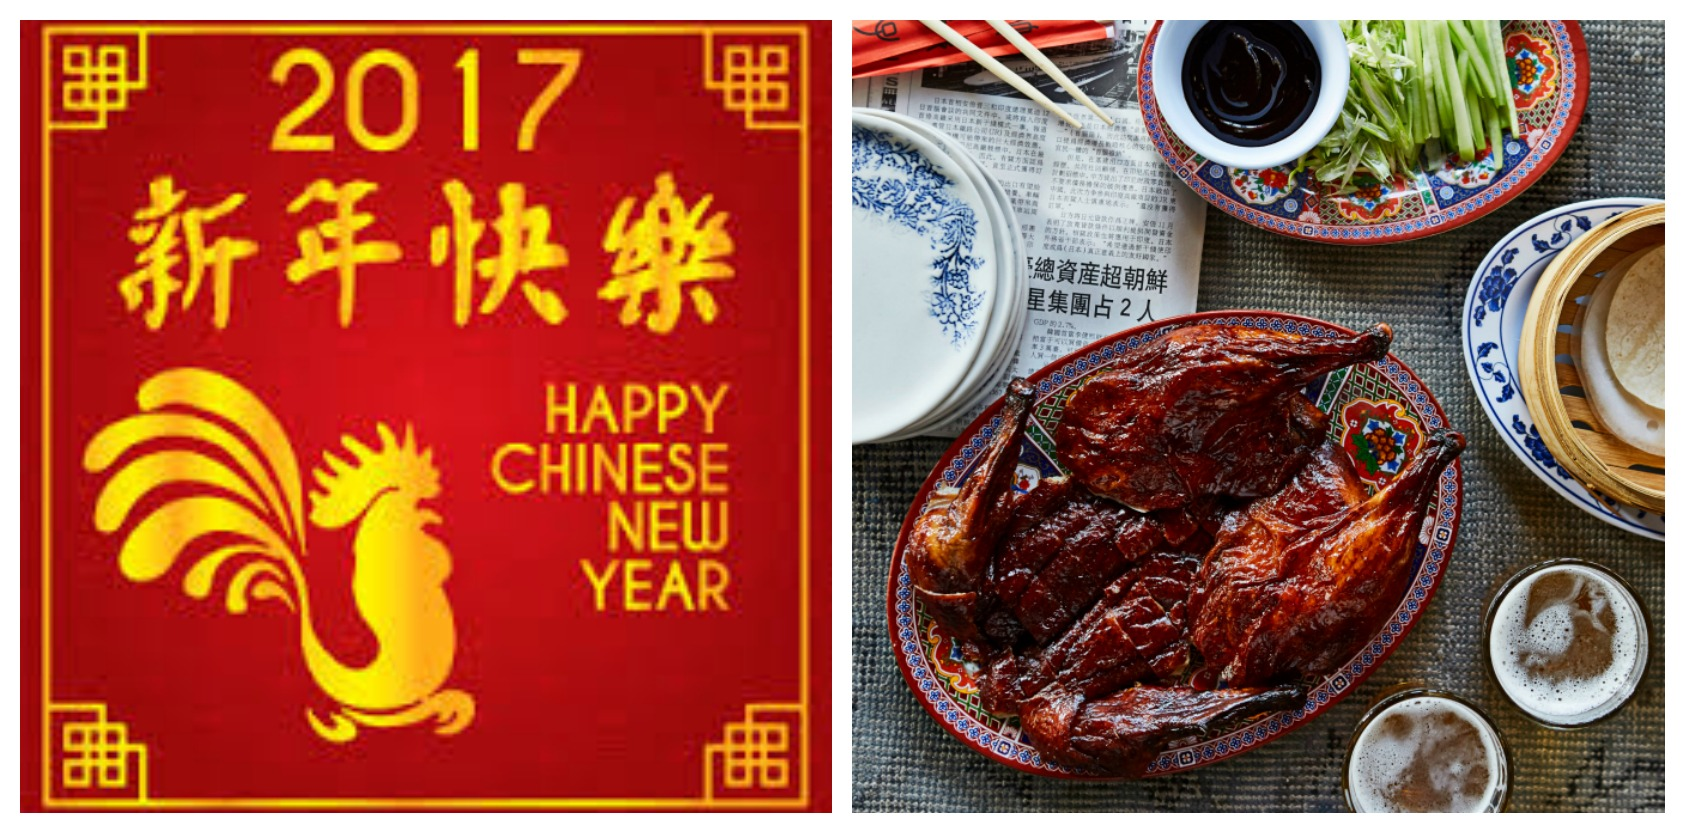 Chinese New Year at TALDE Confidante